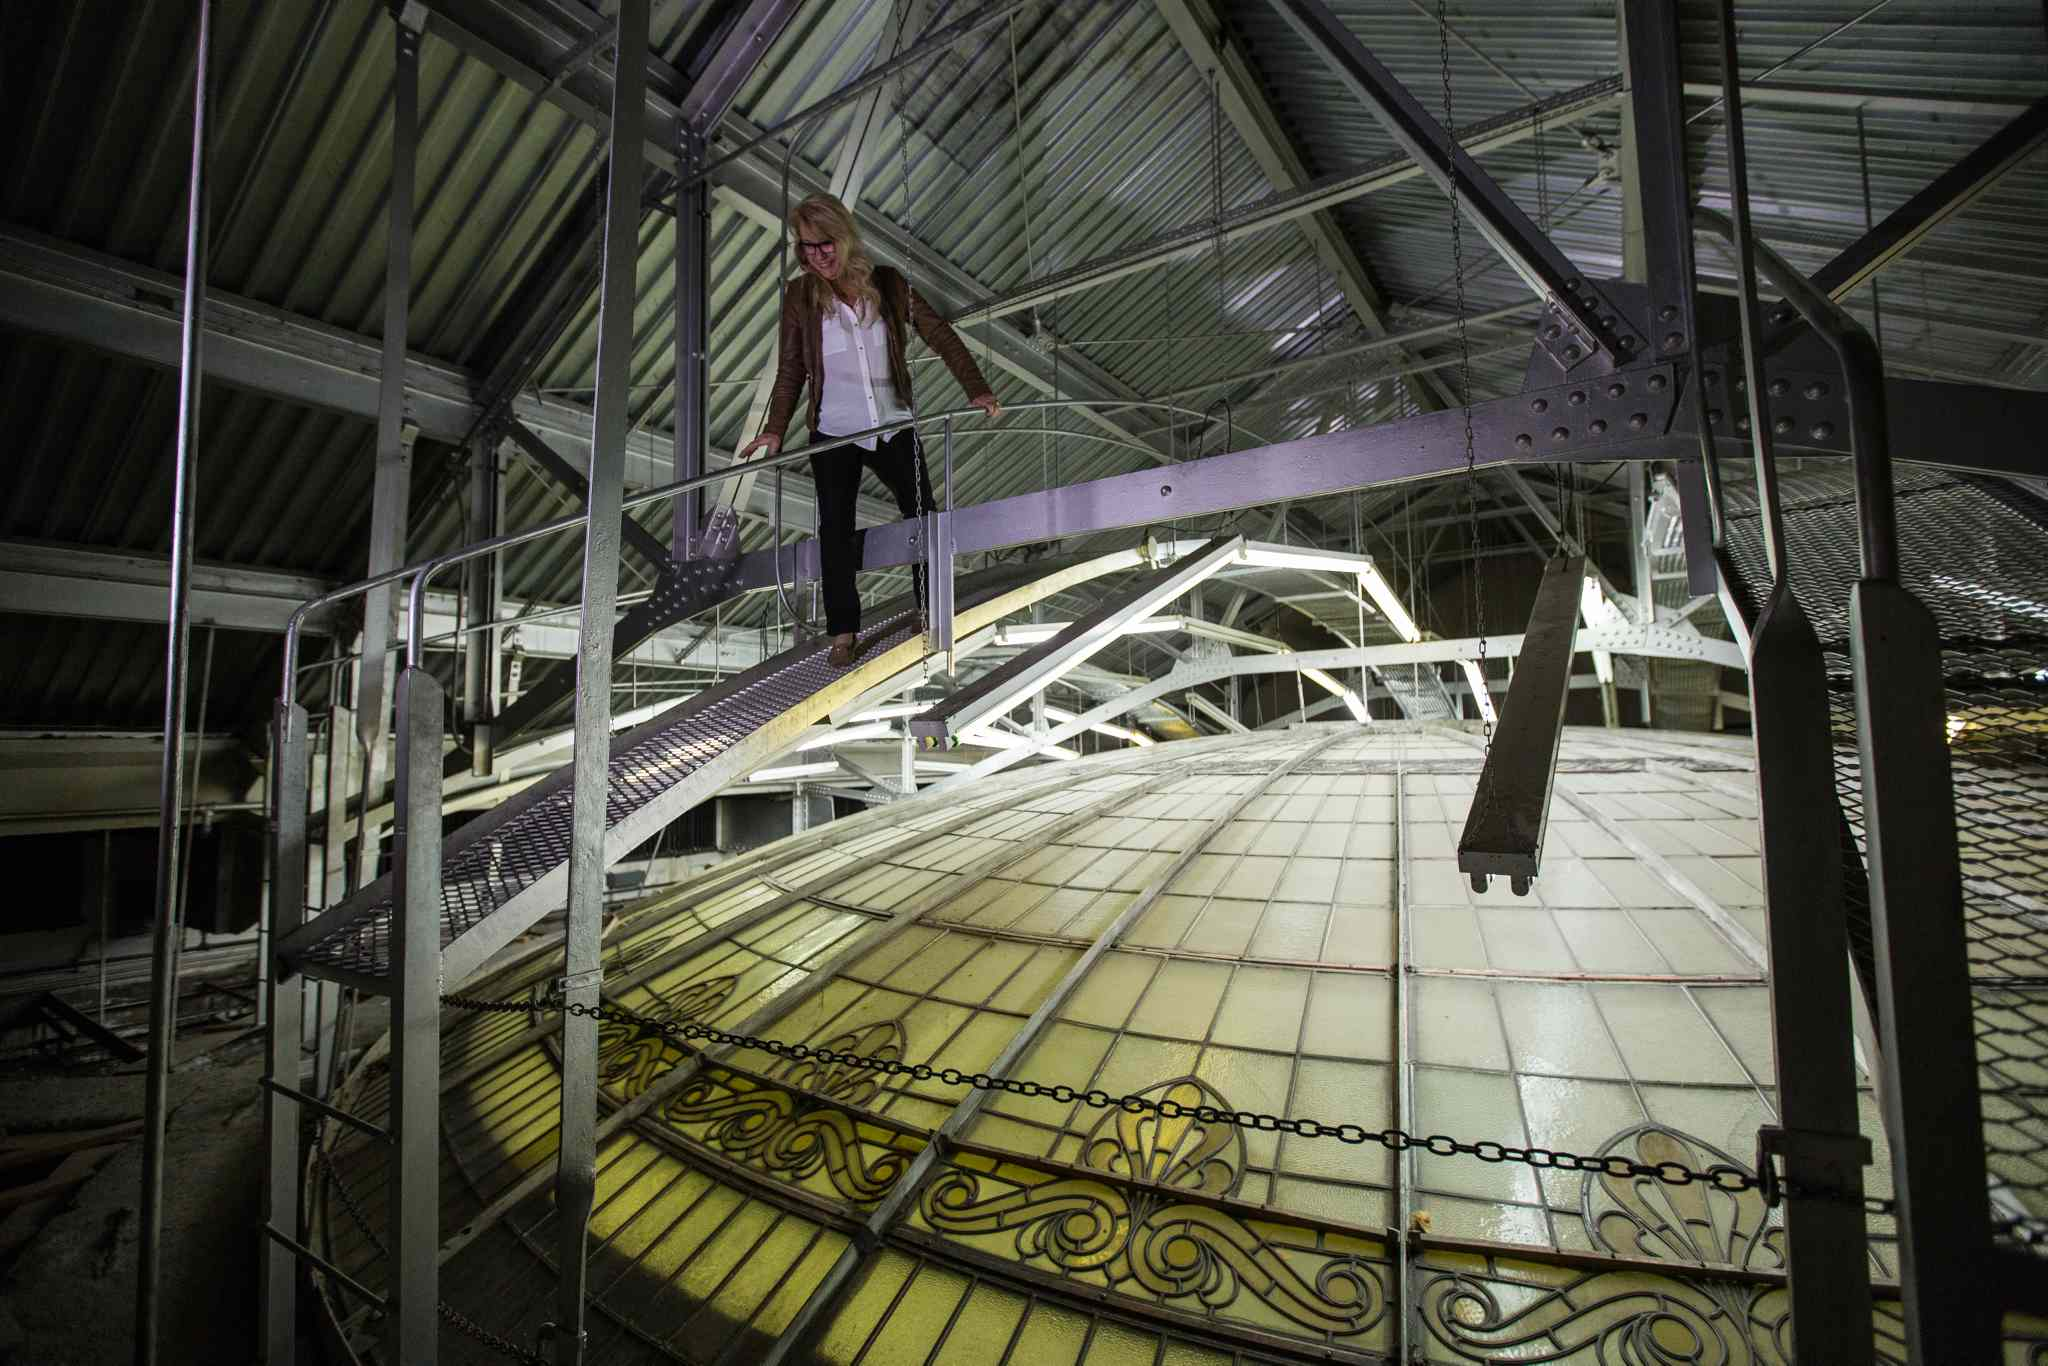 Cindy Tugwell, Executive Director for Heritage Winnipeg, on the catwalk above the glass dome in the Millennium Centre.